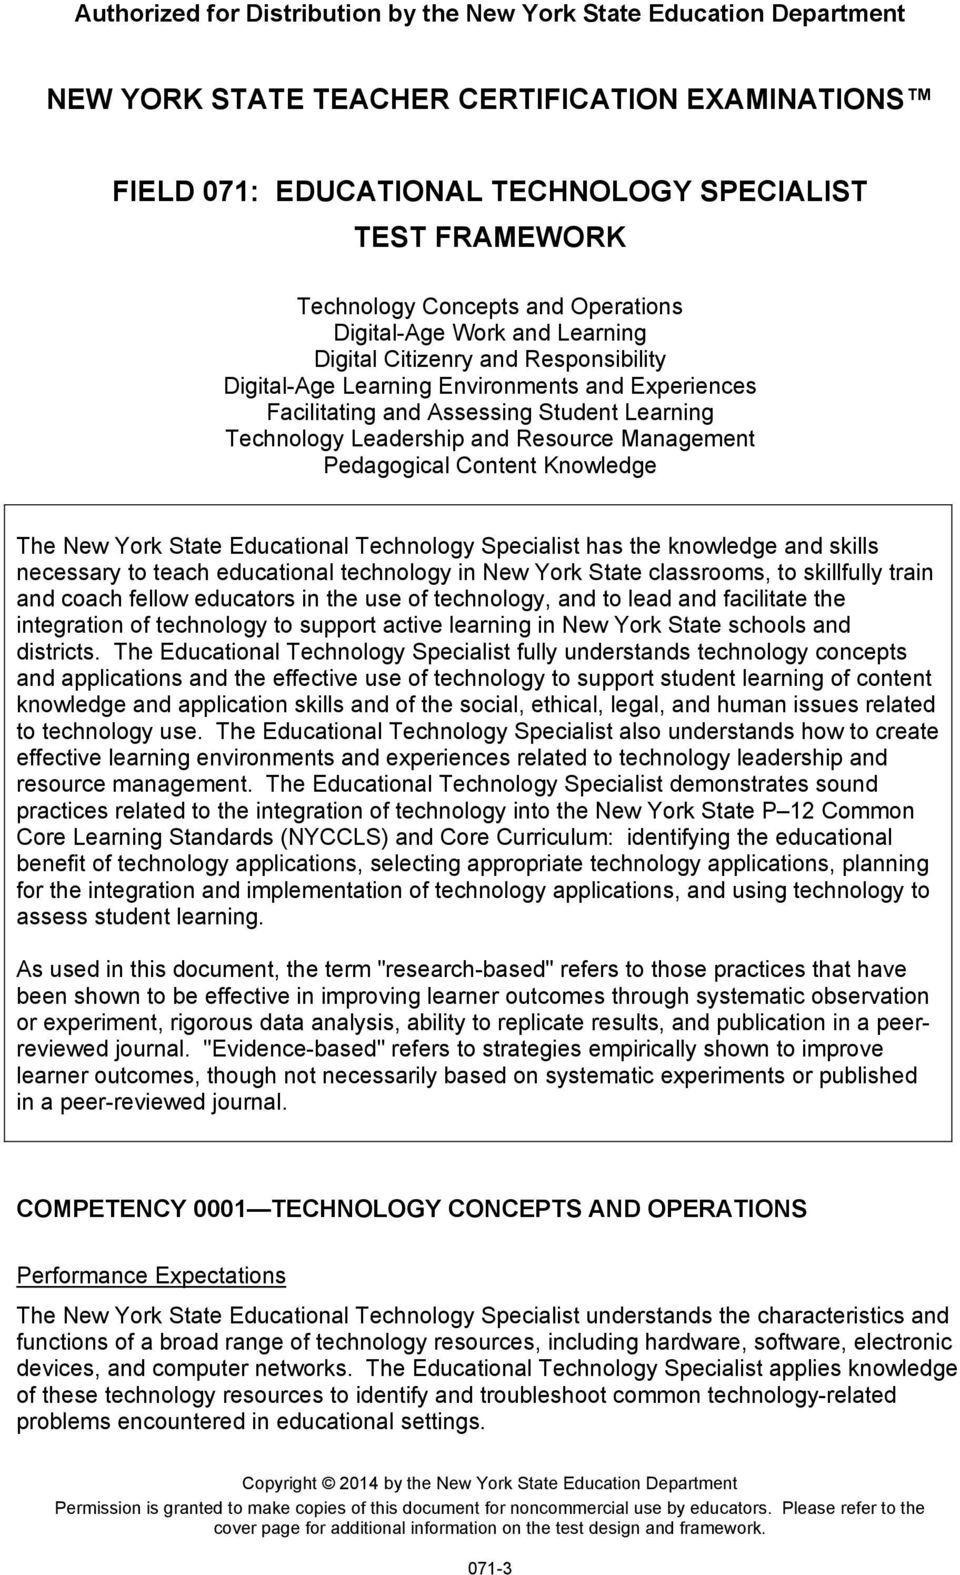 knowledge and skills necessary to teach educational technology in New York State classrooms, to skillfully train and coach fellow educators in the use of technology, and to lead and facilitate the